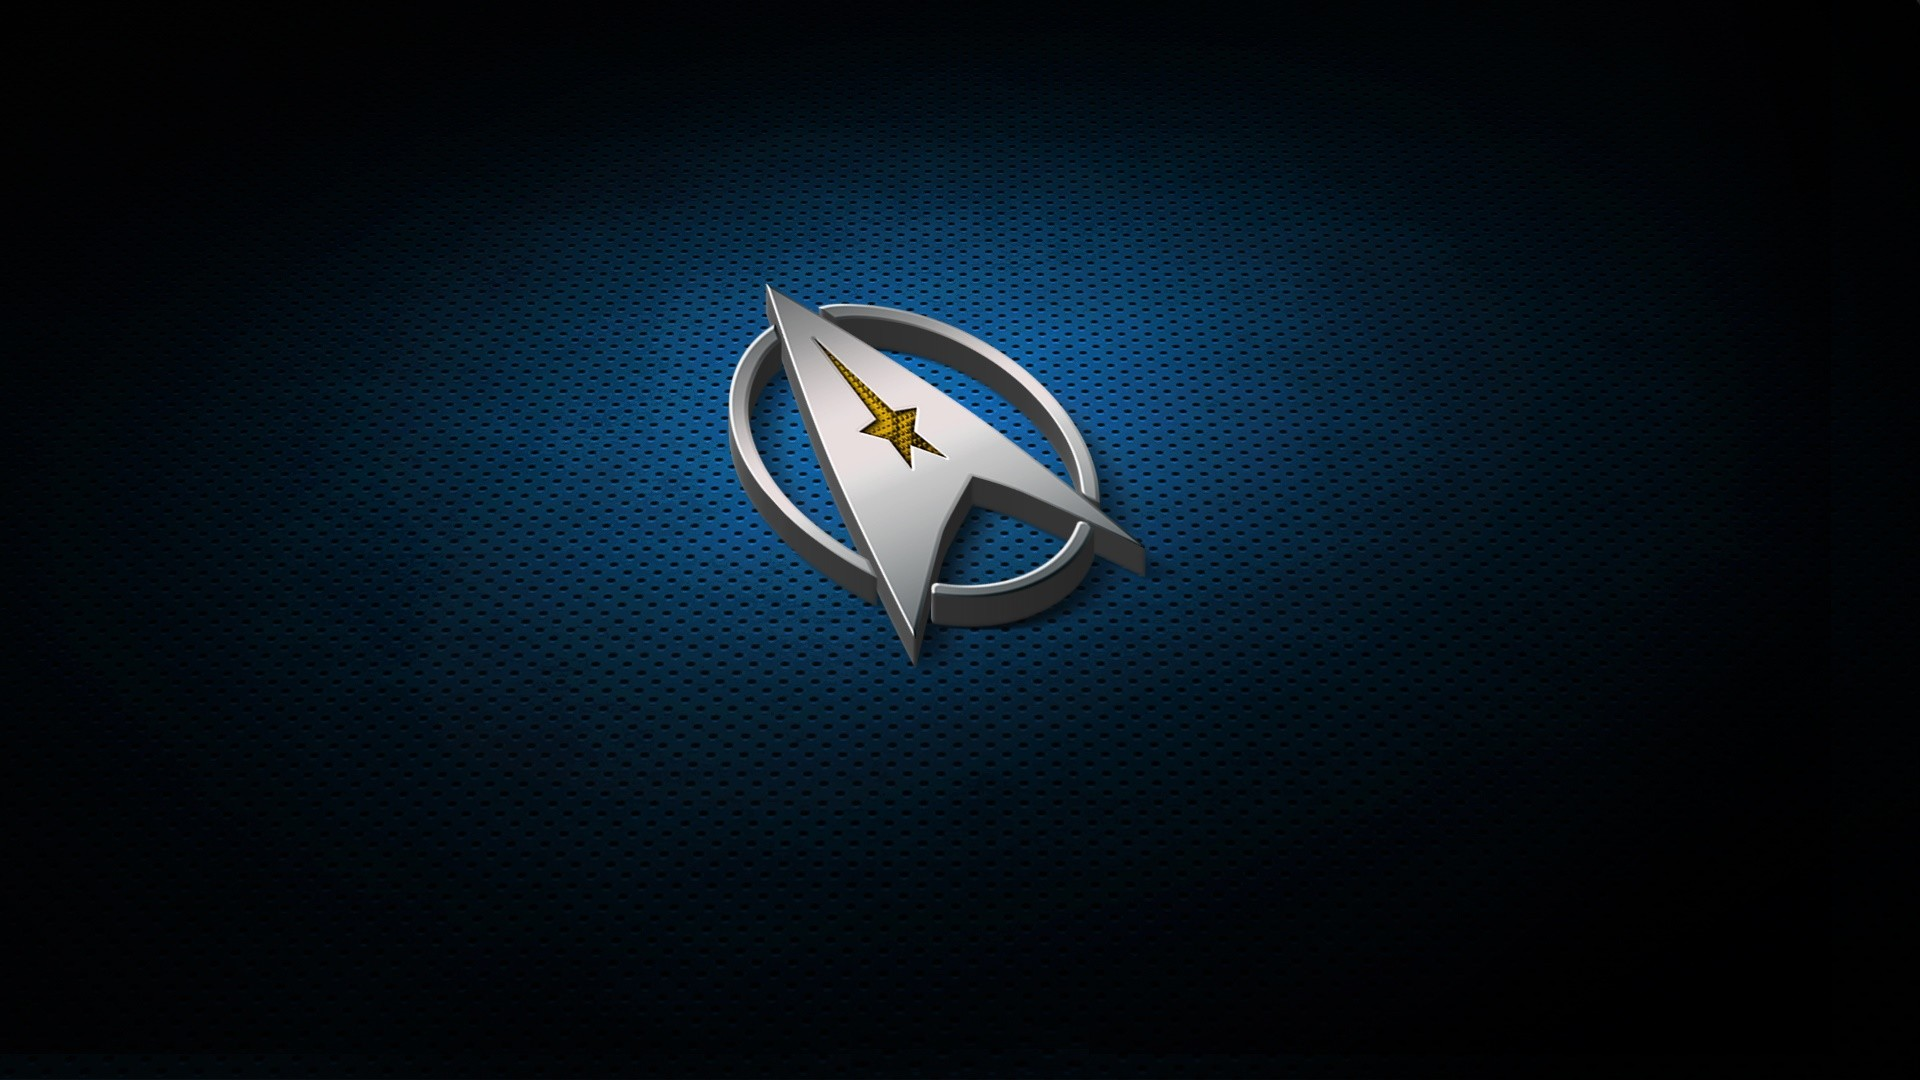 721460 beautiful star trek phone wallpaper 1920x1080 for tablet - Star Trek Tapete